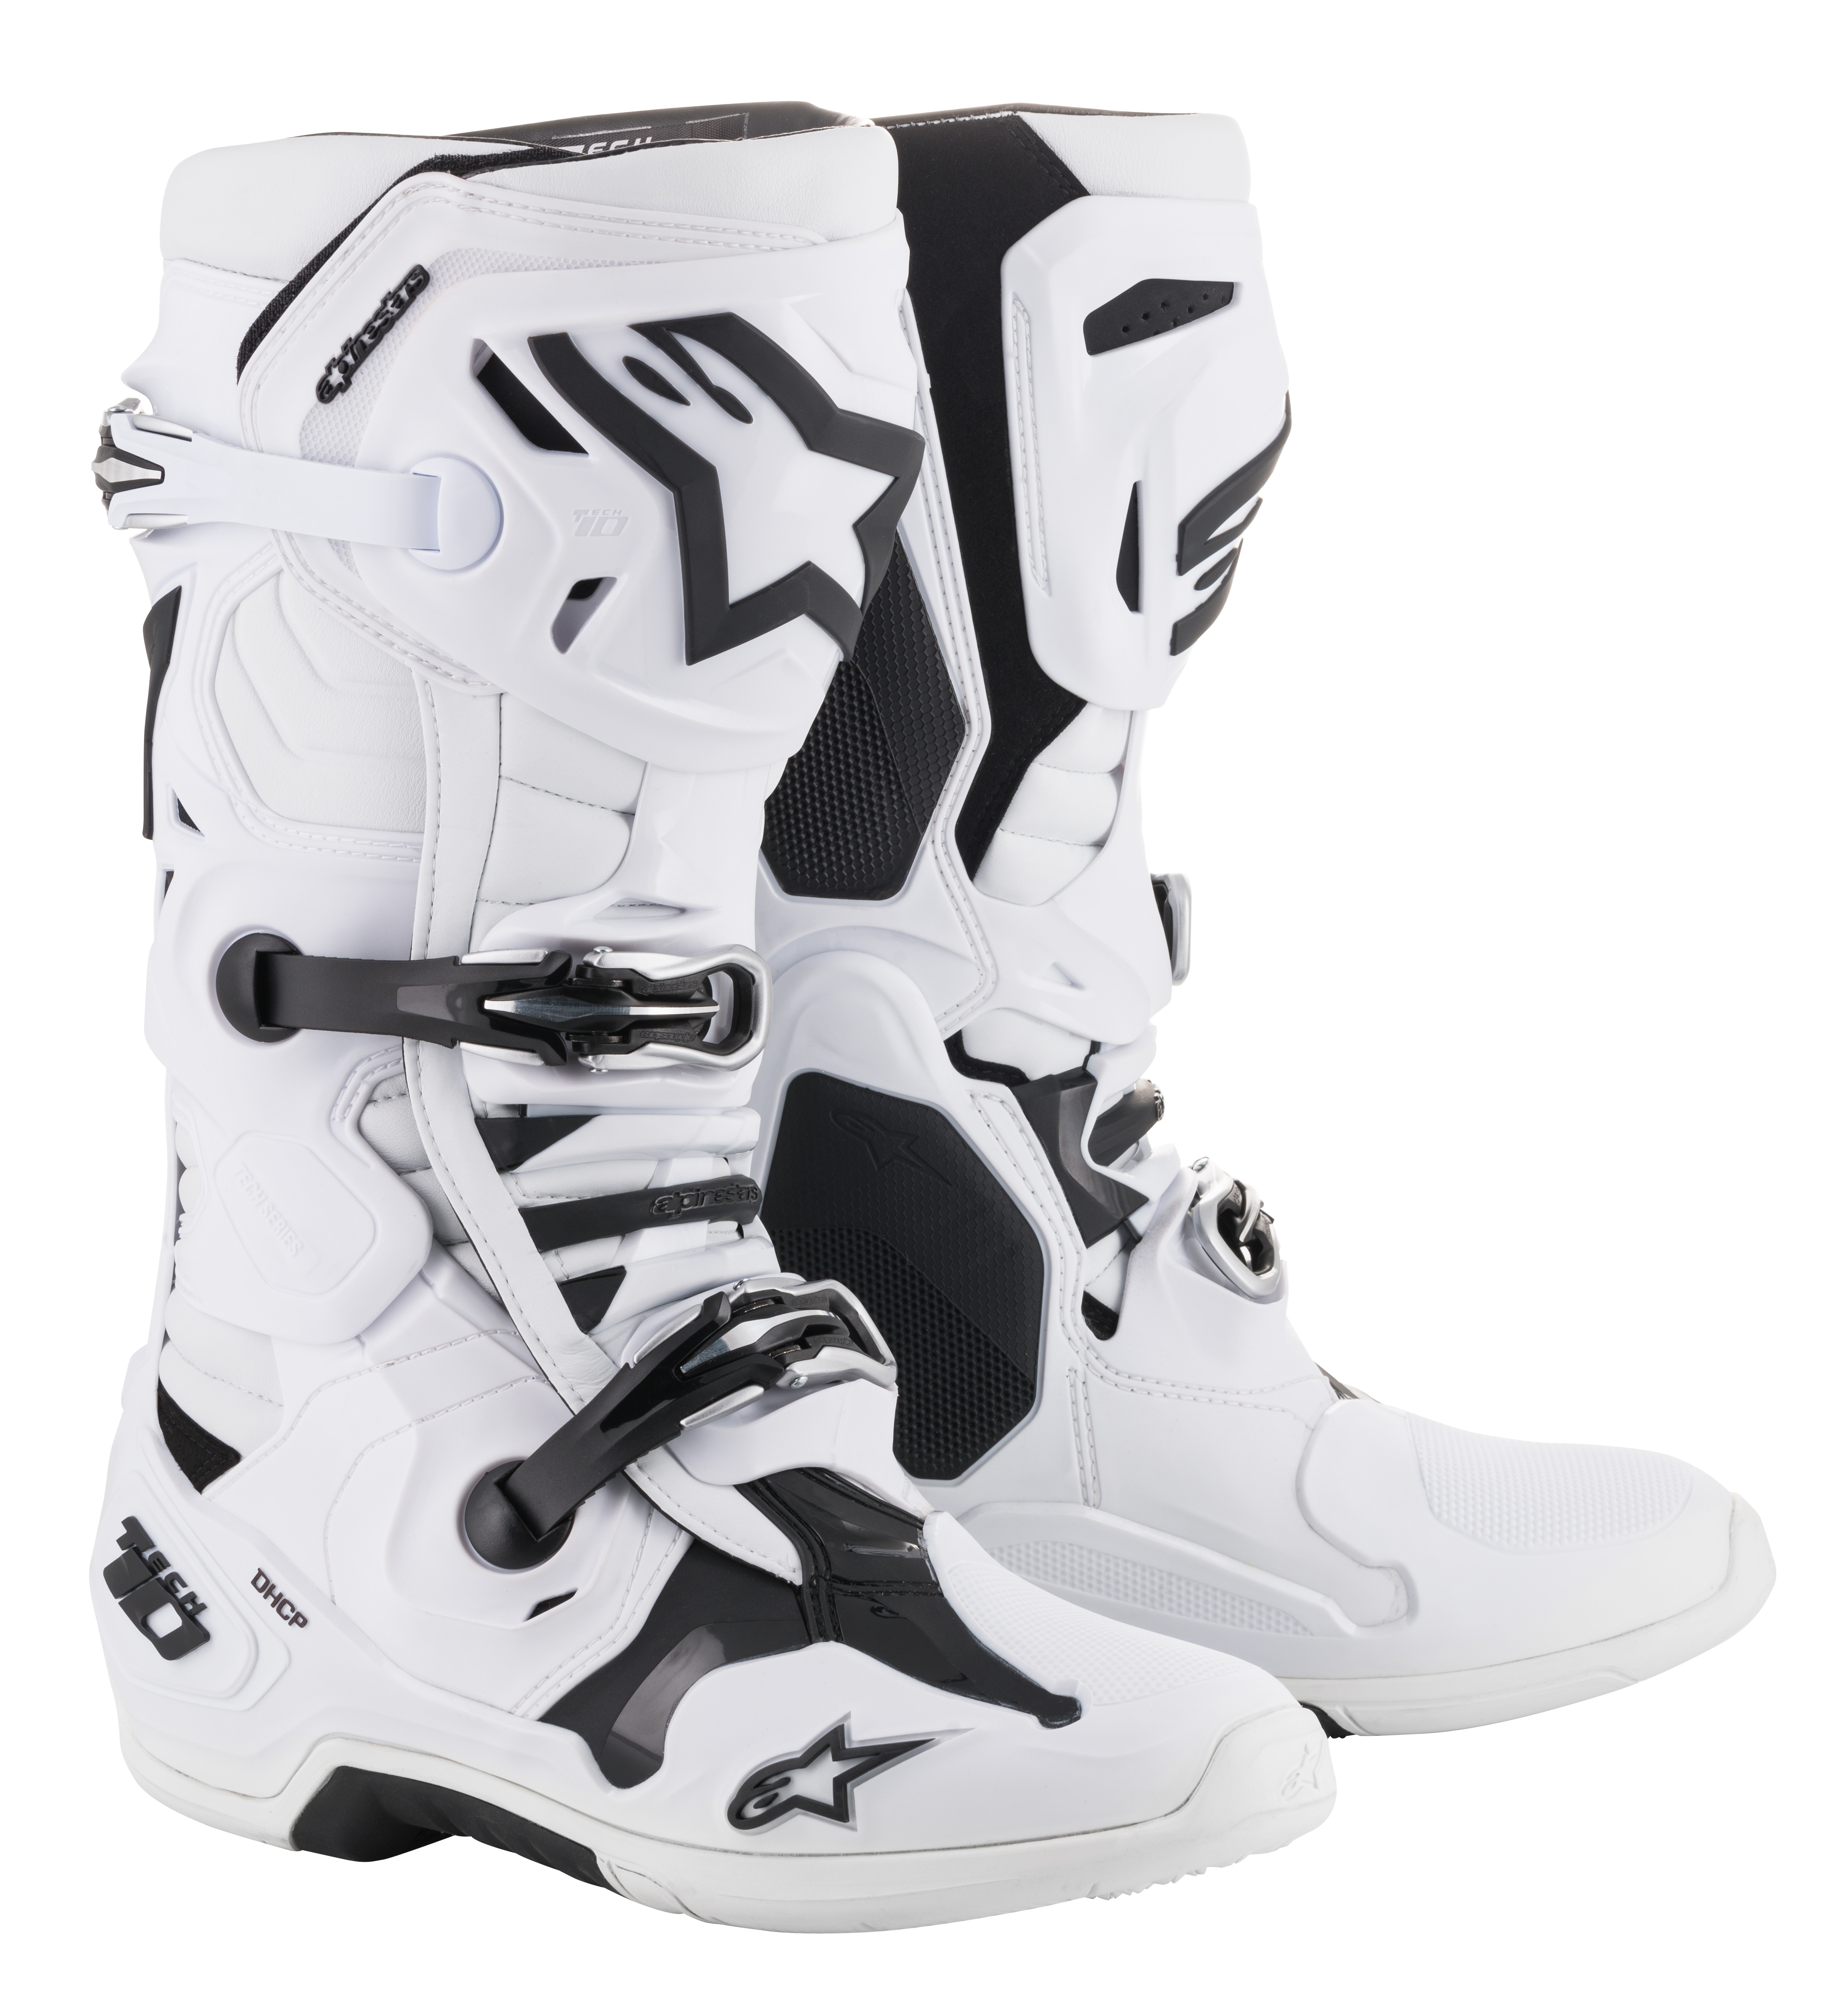 8 8021506960614 Alpinestars Tech 10 Nations Mens Off-Road Motorcycle Boots Black//Red//White